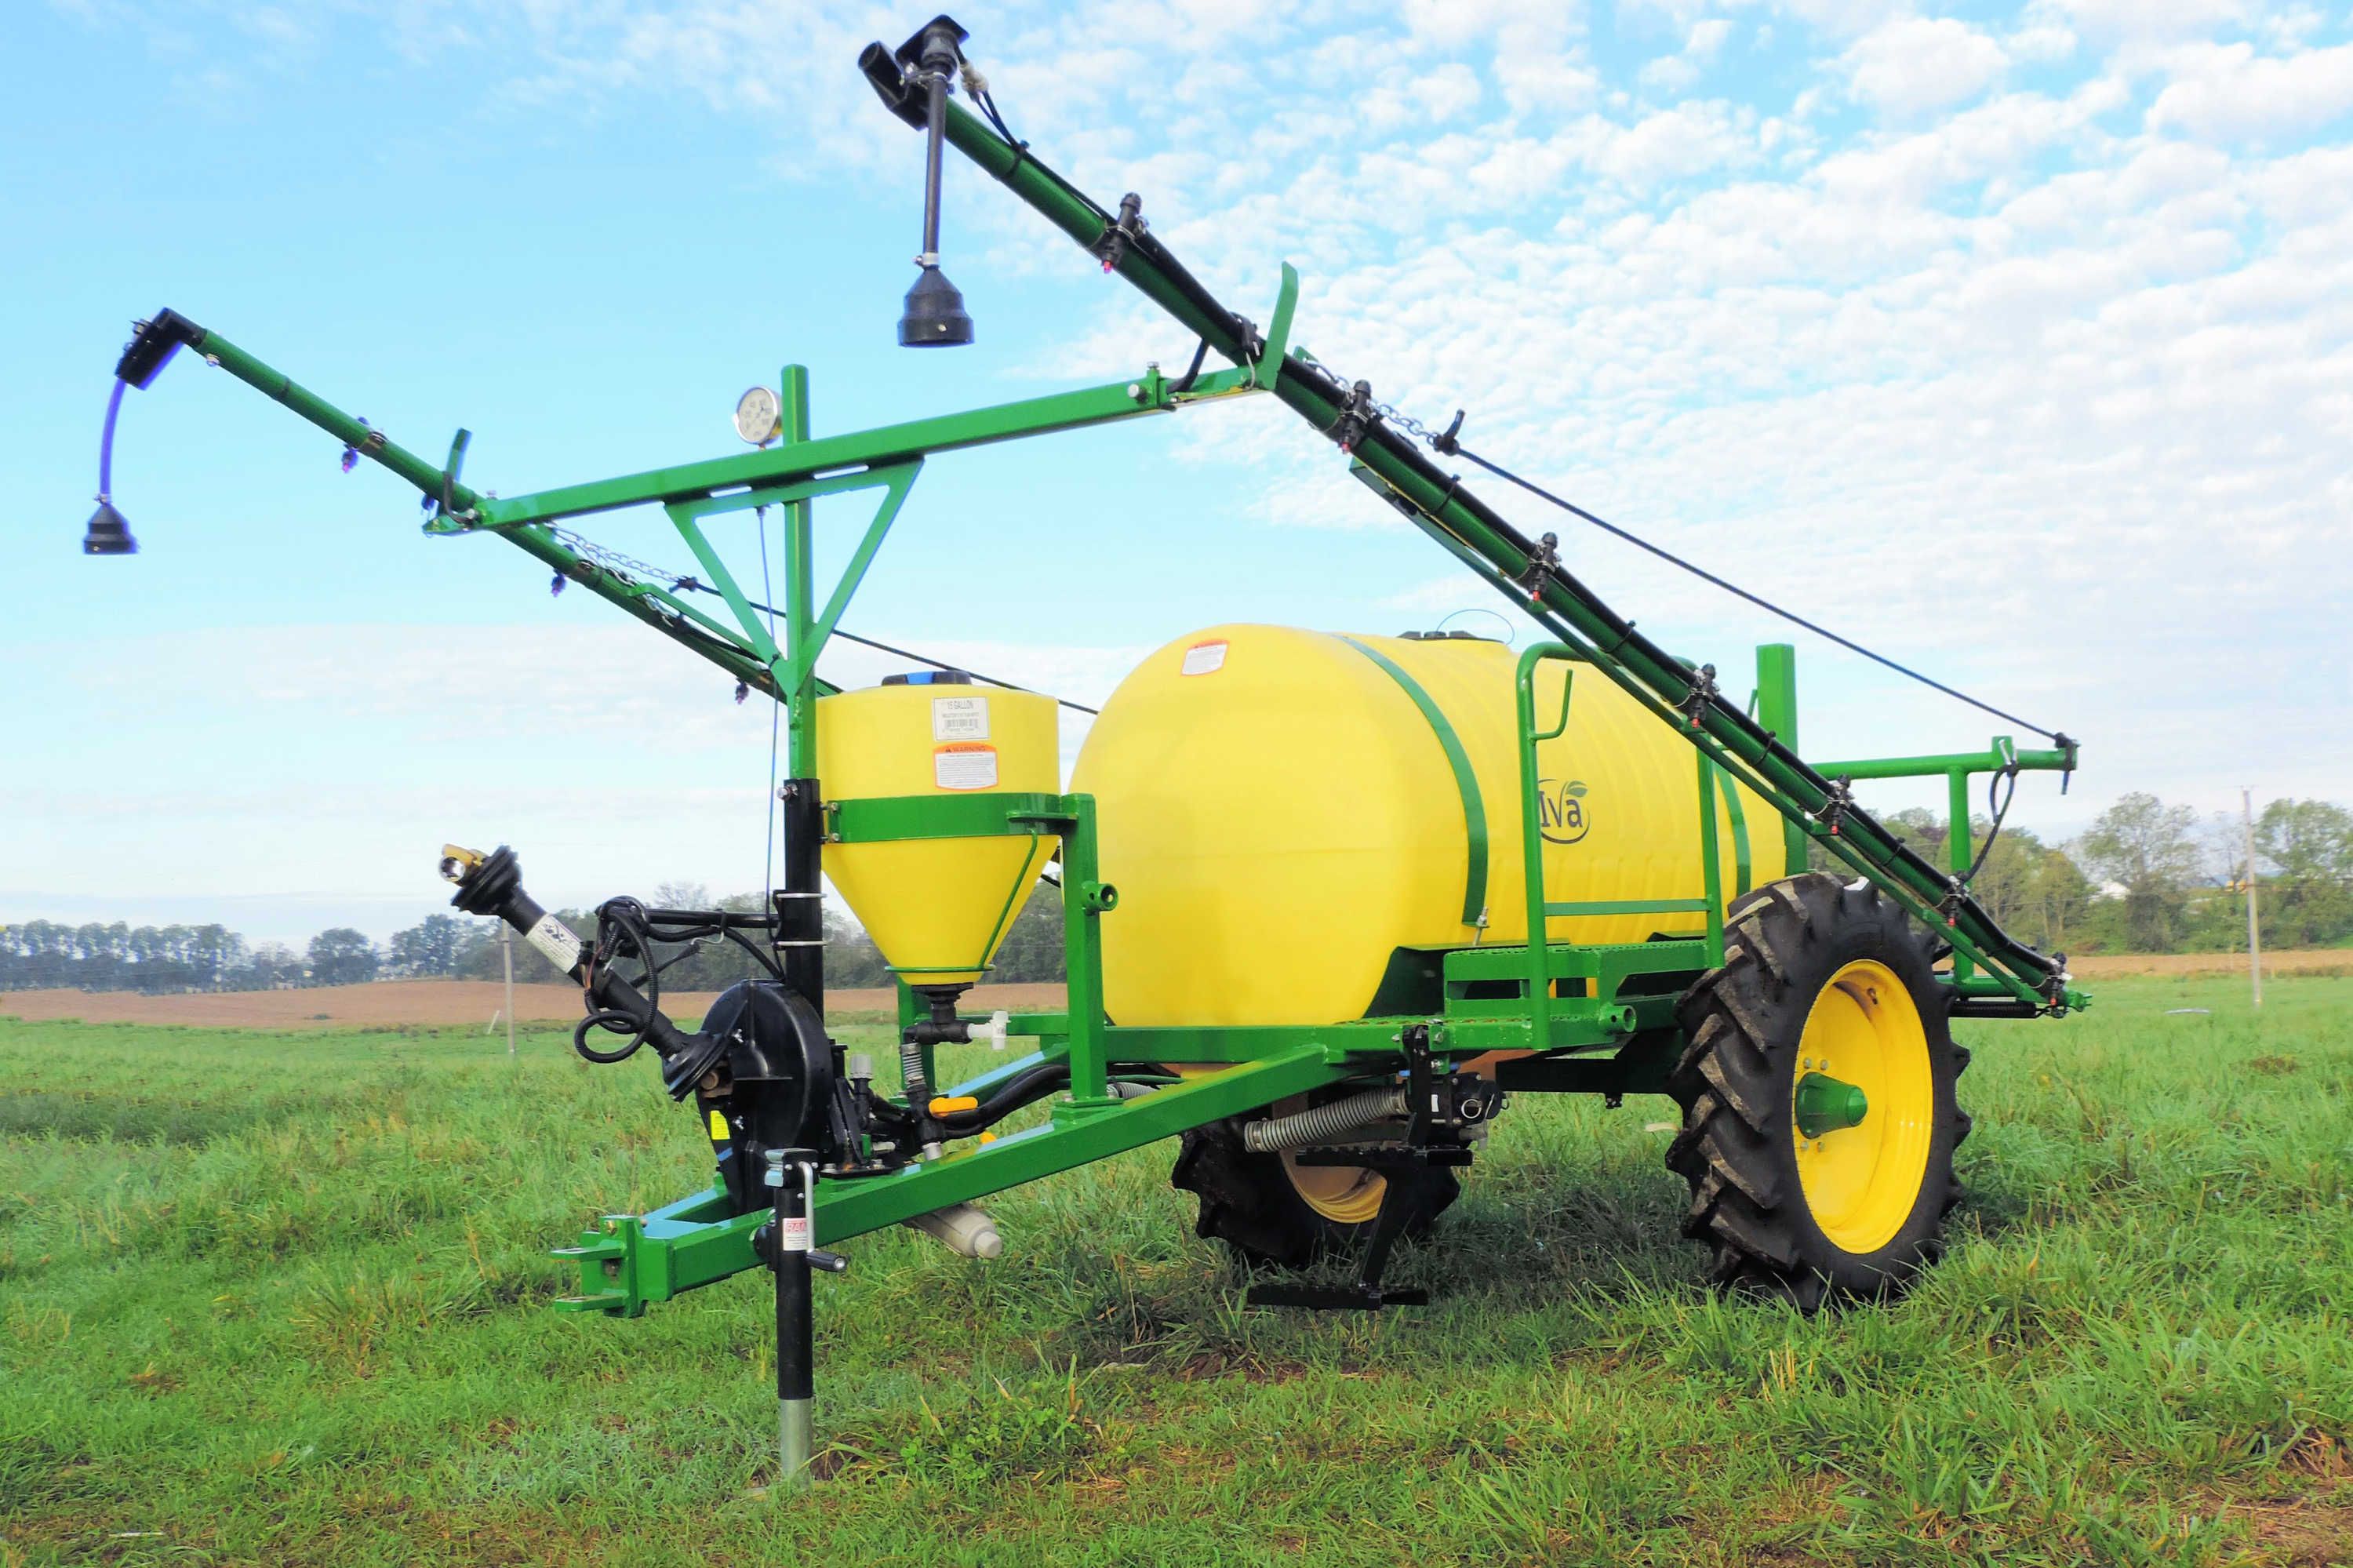 300 gallon Trailer Field Sprayer with 30' booms 9.5-28 Tall Tires